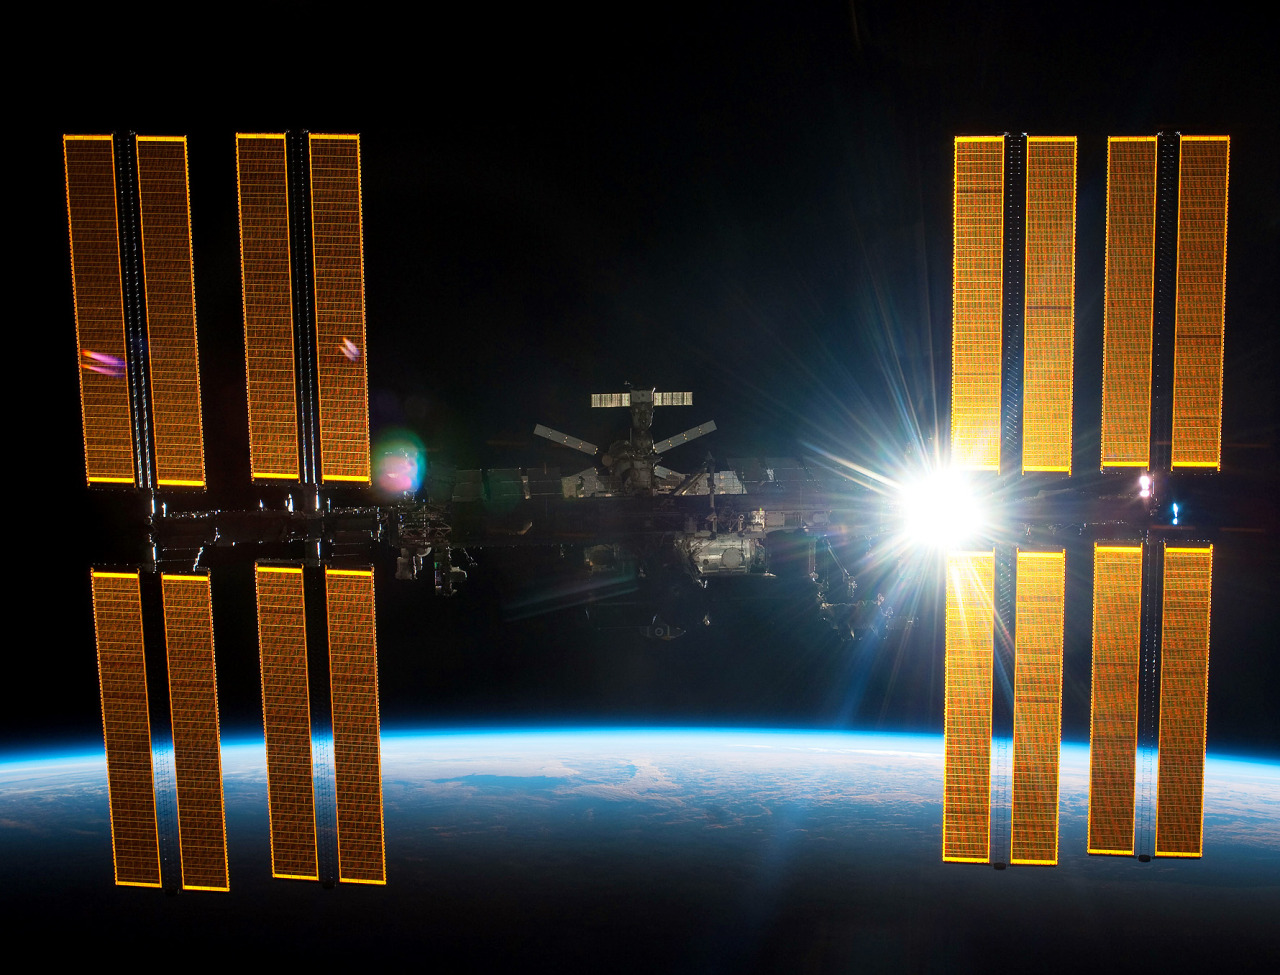 spaceplasma:  International Space Station Leaking Ammonia Coolant, NASA Says The International Space Station has a radiator leak in its power system. The outpost's commander calls the situation serious, but not life-threatening. The six-member crew on Thursday noticed white flakes of ammonia leaking out of the station. Ammonia runs through multiple radiator loops to cool the station's power system. NASA said the leak is increasing from one previously leaking loop that can be bypassed if needed. NASA spokesman Bob Jacobs said engineers are working on rerouting electronics just in case the loop shuts down. The Earth-orbiting station has backup systems. Space station Commander Chris Hadfield of Canada tweeted that the problem, while serious, was stabilized. Officials will know more Friday. The space station always has enough emergency escape ships for the crew, but there are no plans to use them.